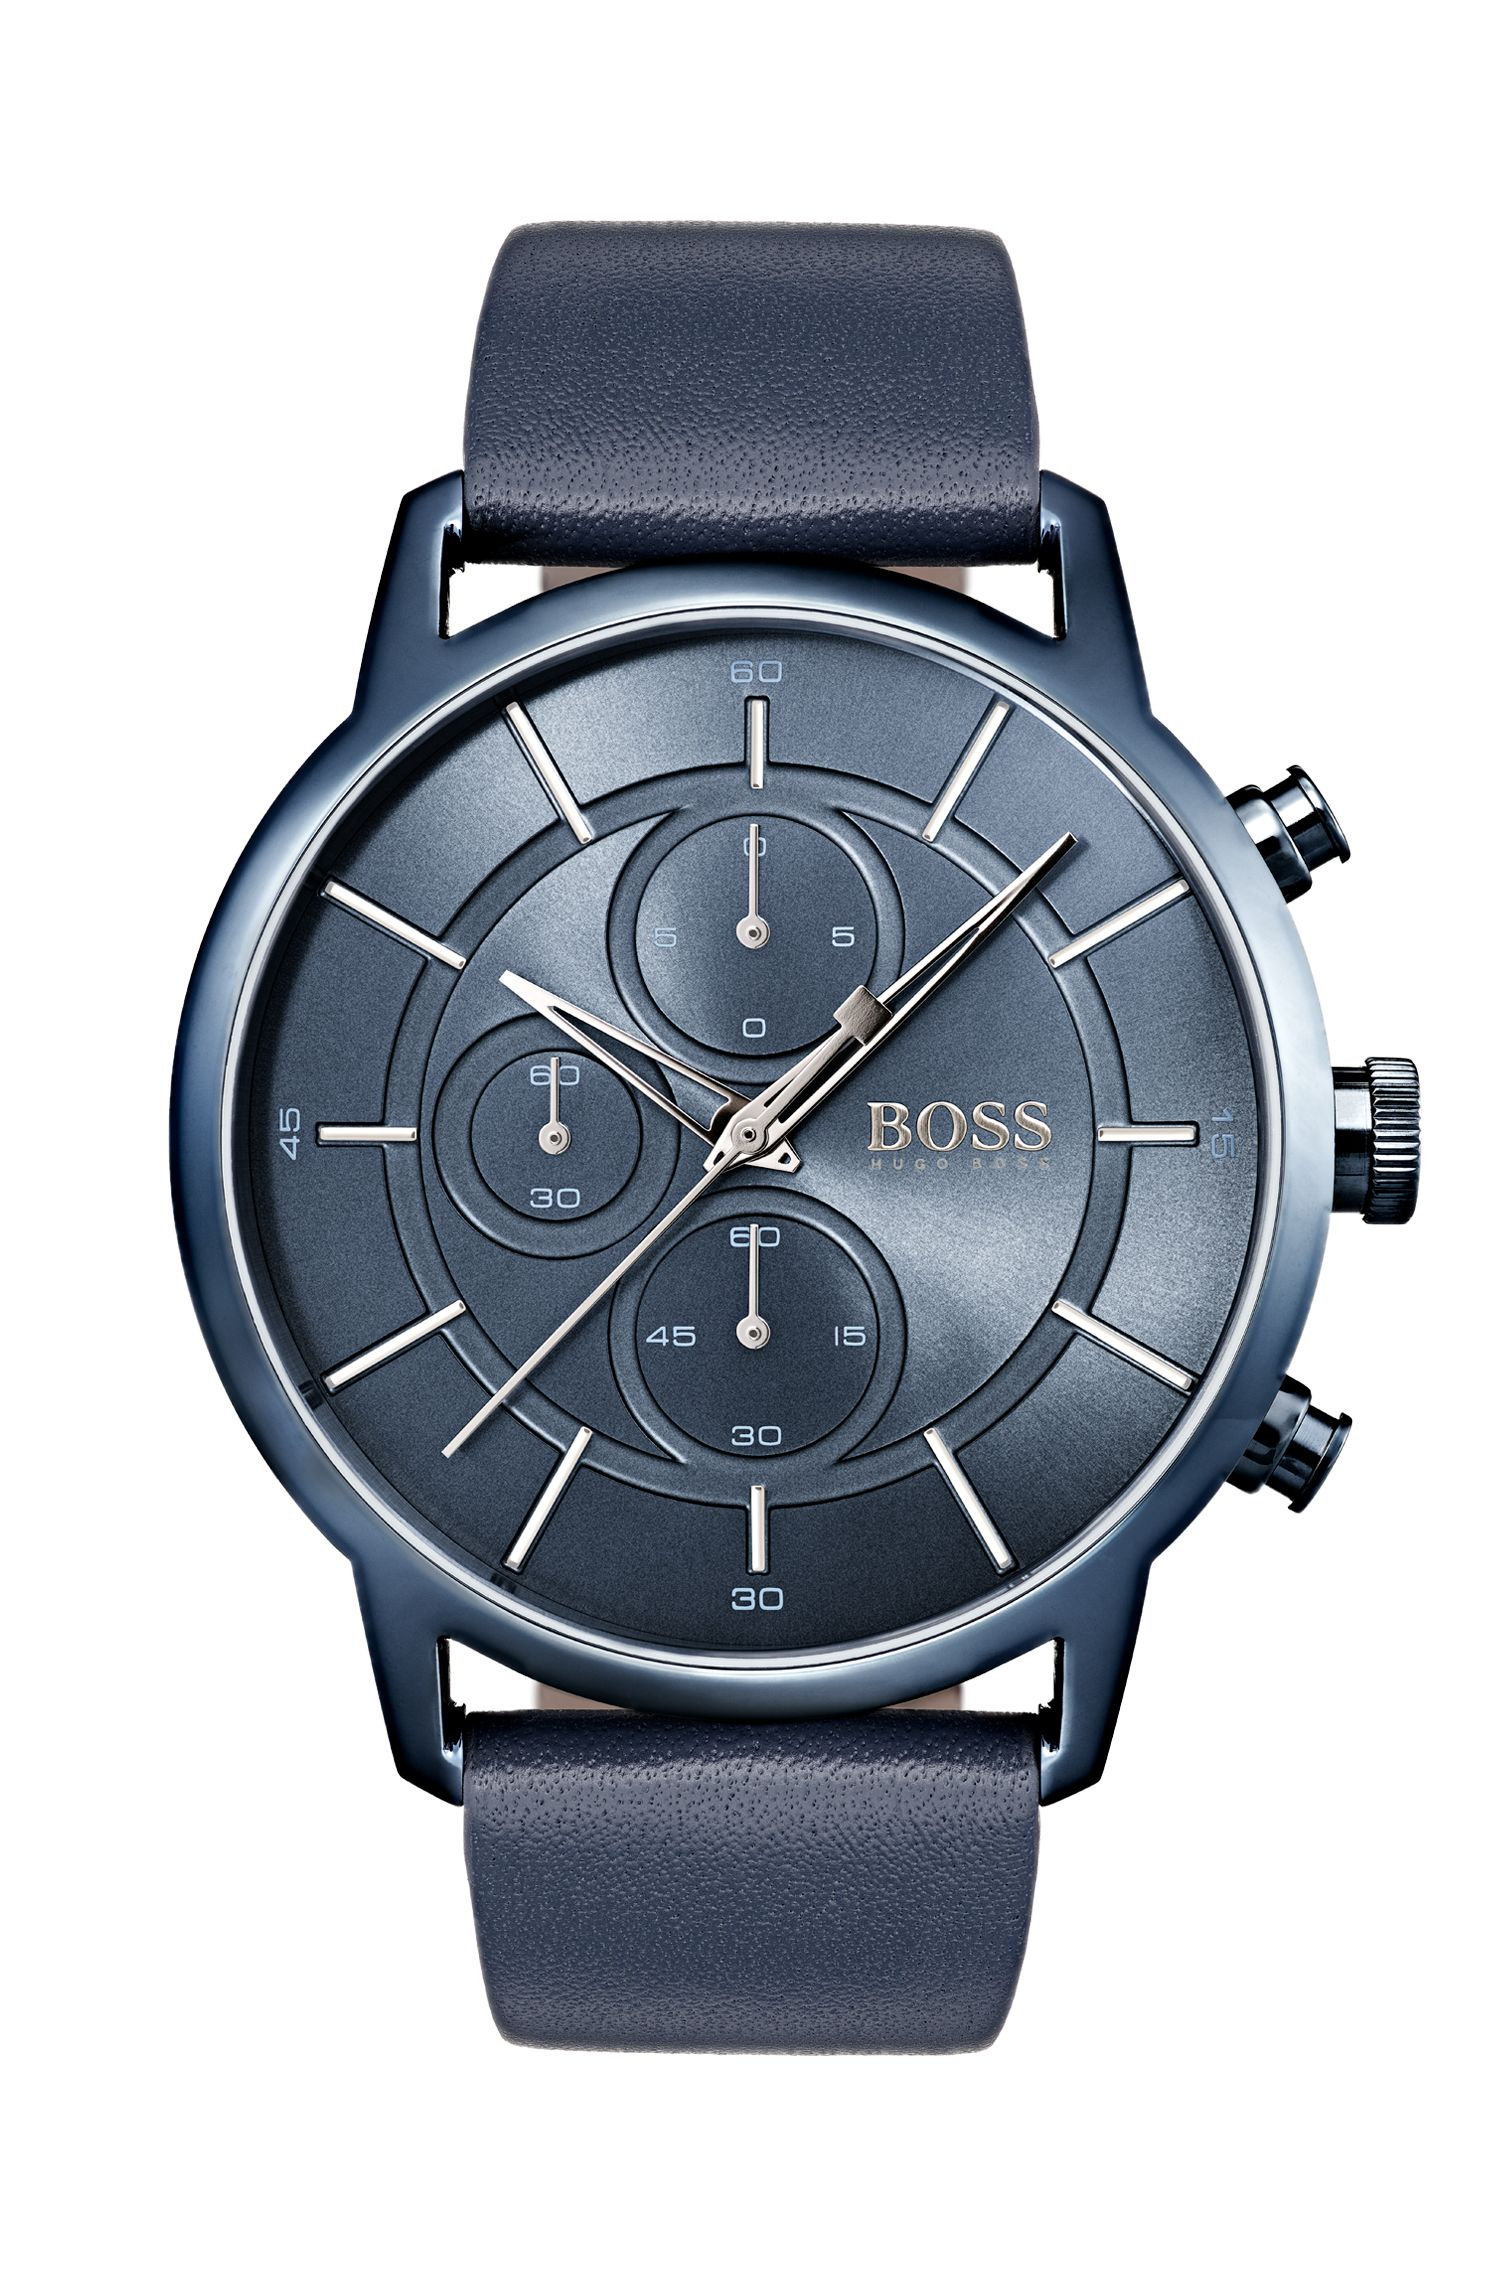 Bauhaus-inspired watch with blue leather strap